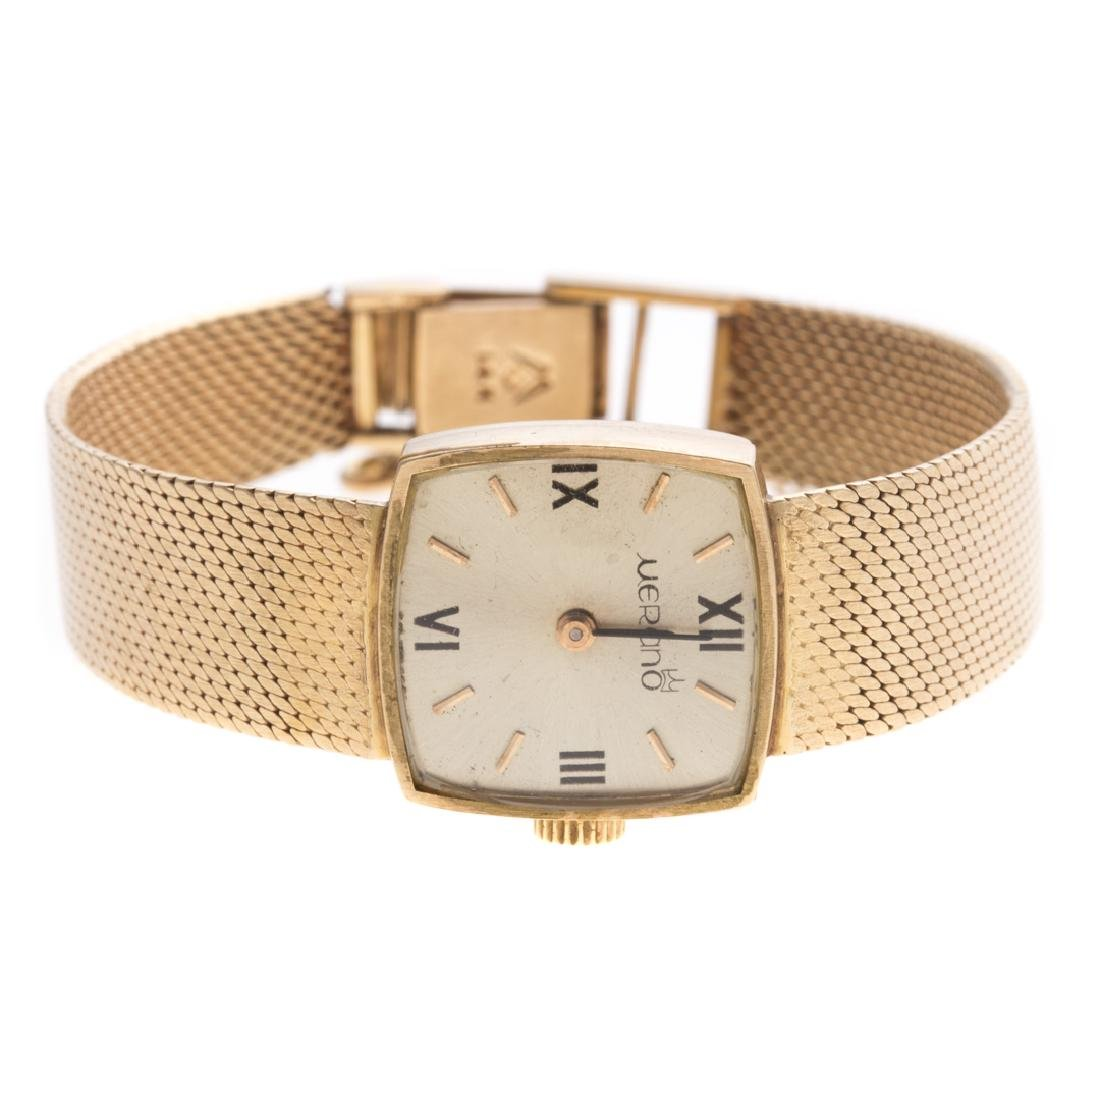 A Lady's 14K Merano & Two Tone Tissot Watches - 2